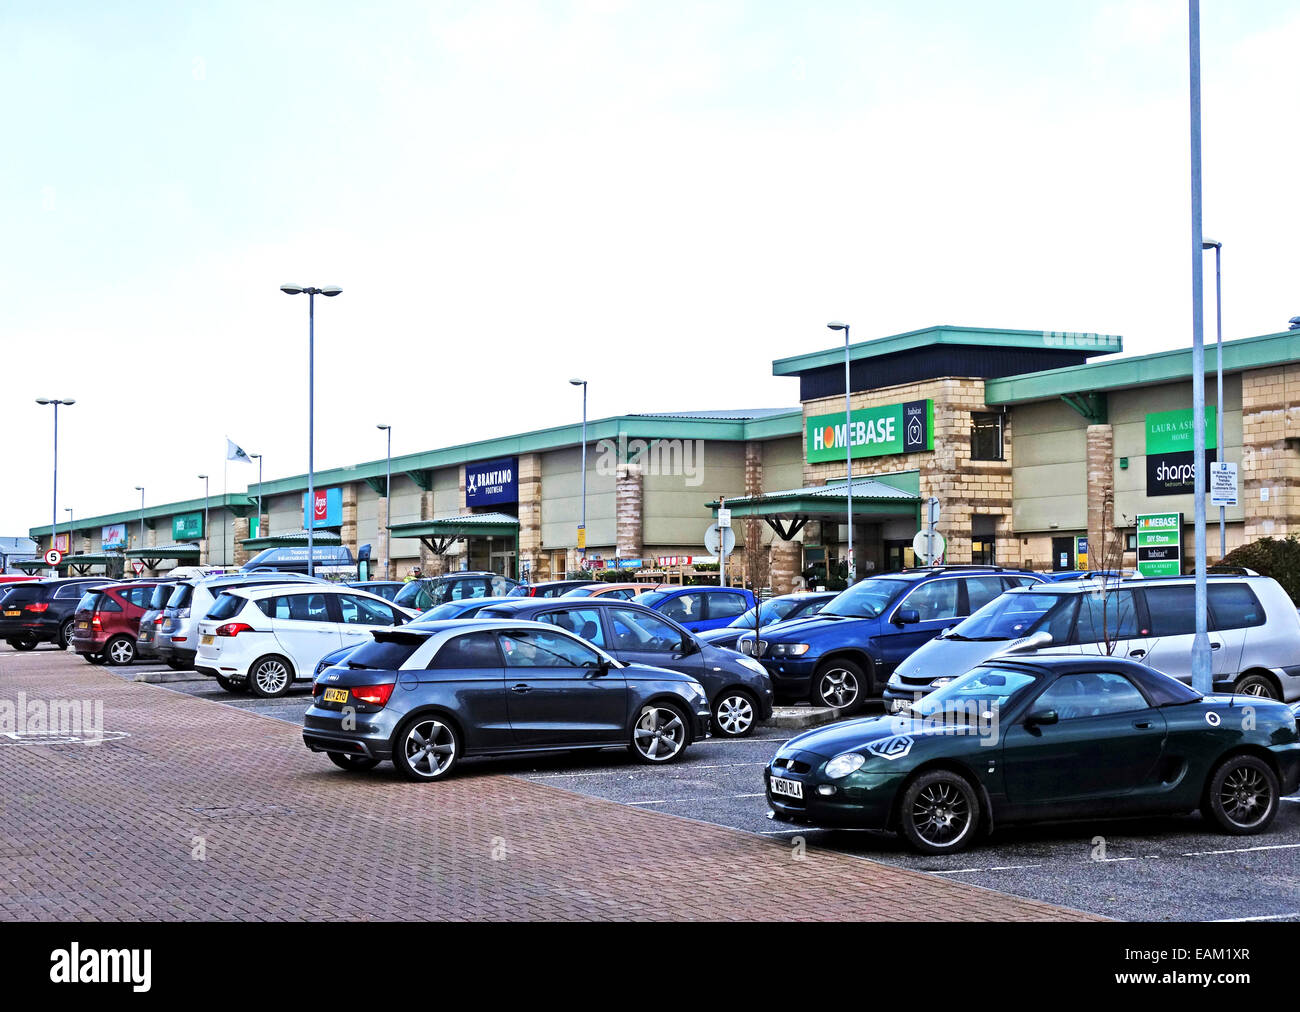 Cars parked at an out of town retail park - Stock Image